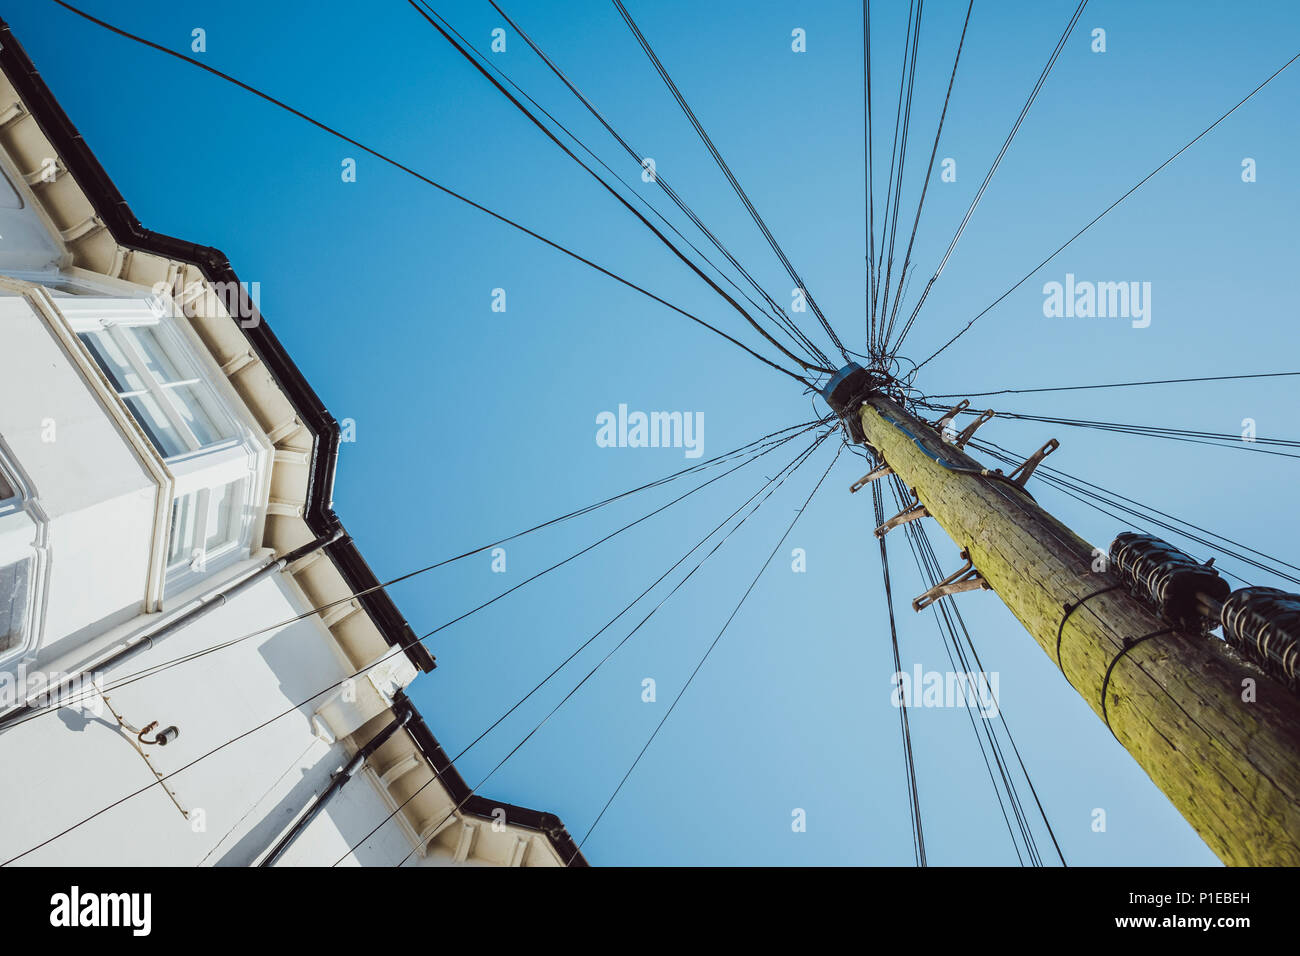 Power Pole with Cobweb Powerlines, Brighton, England - Stock Image